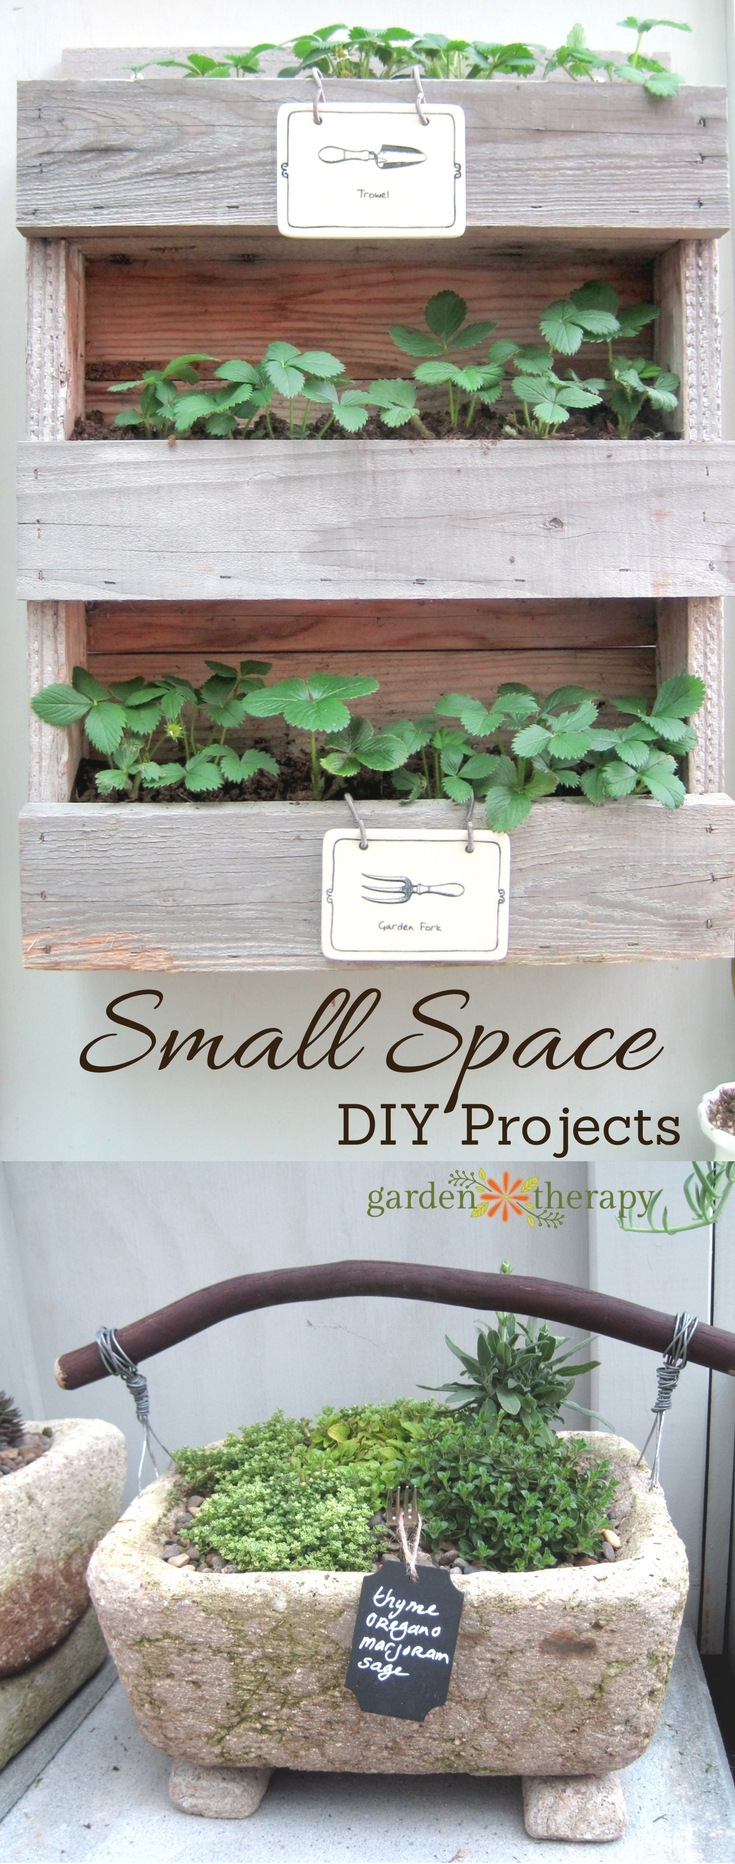 Small Space Garden DIY Project Ideas